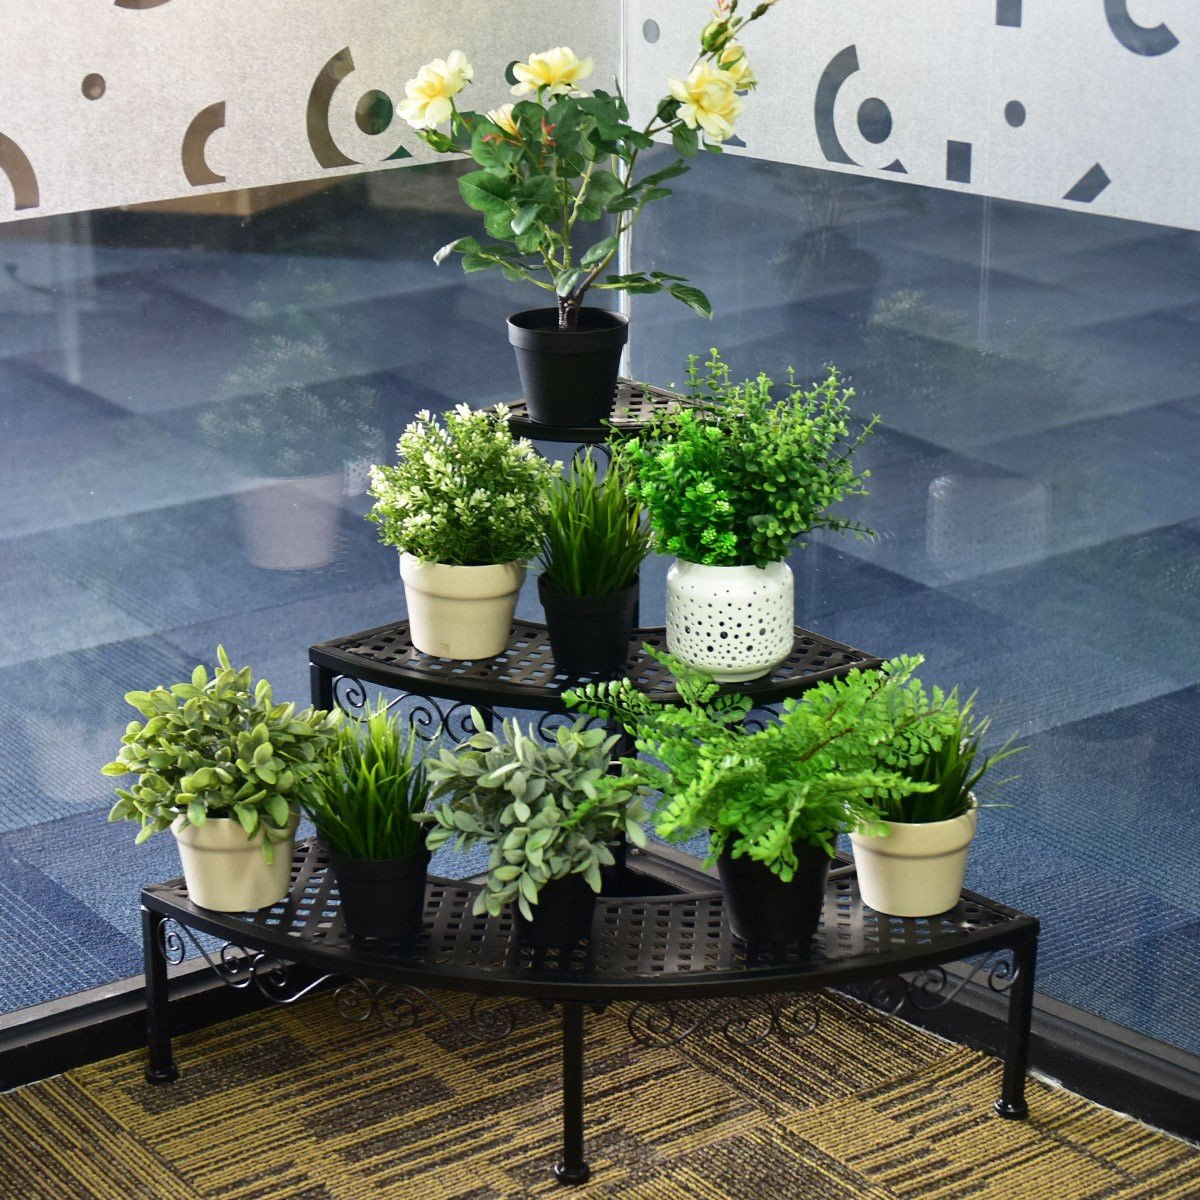 3 Tier Corner Metal Flower Ladder Plant Stand By Choice